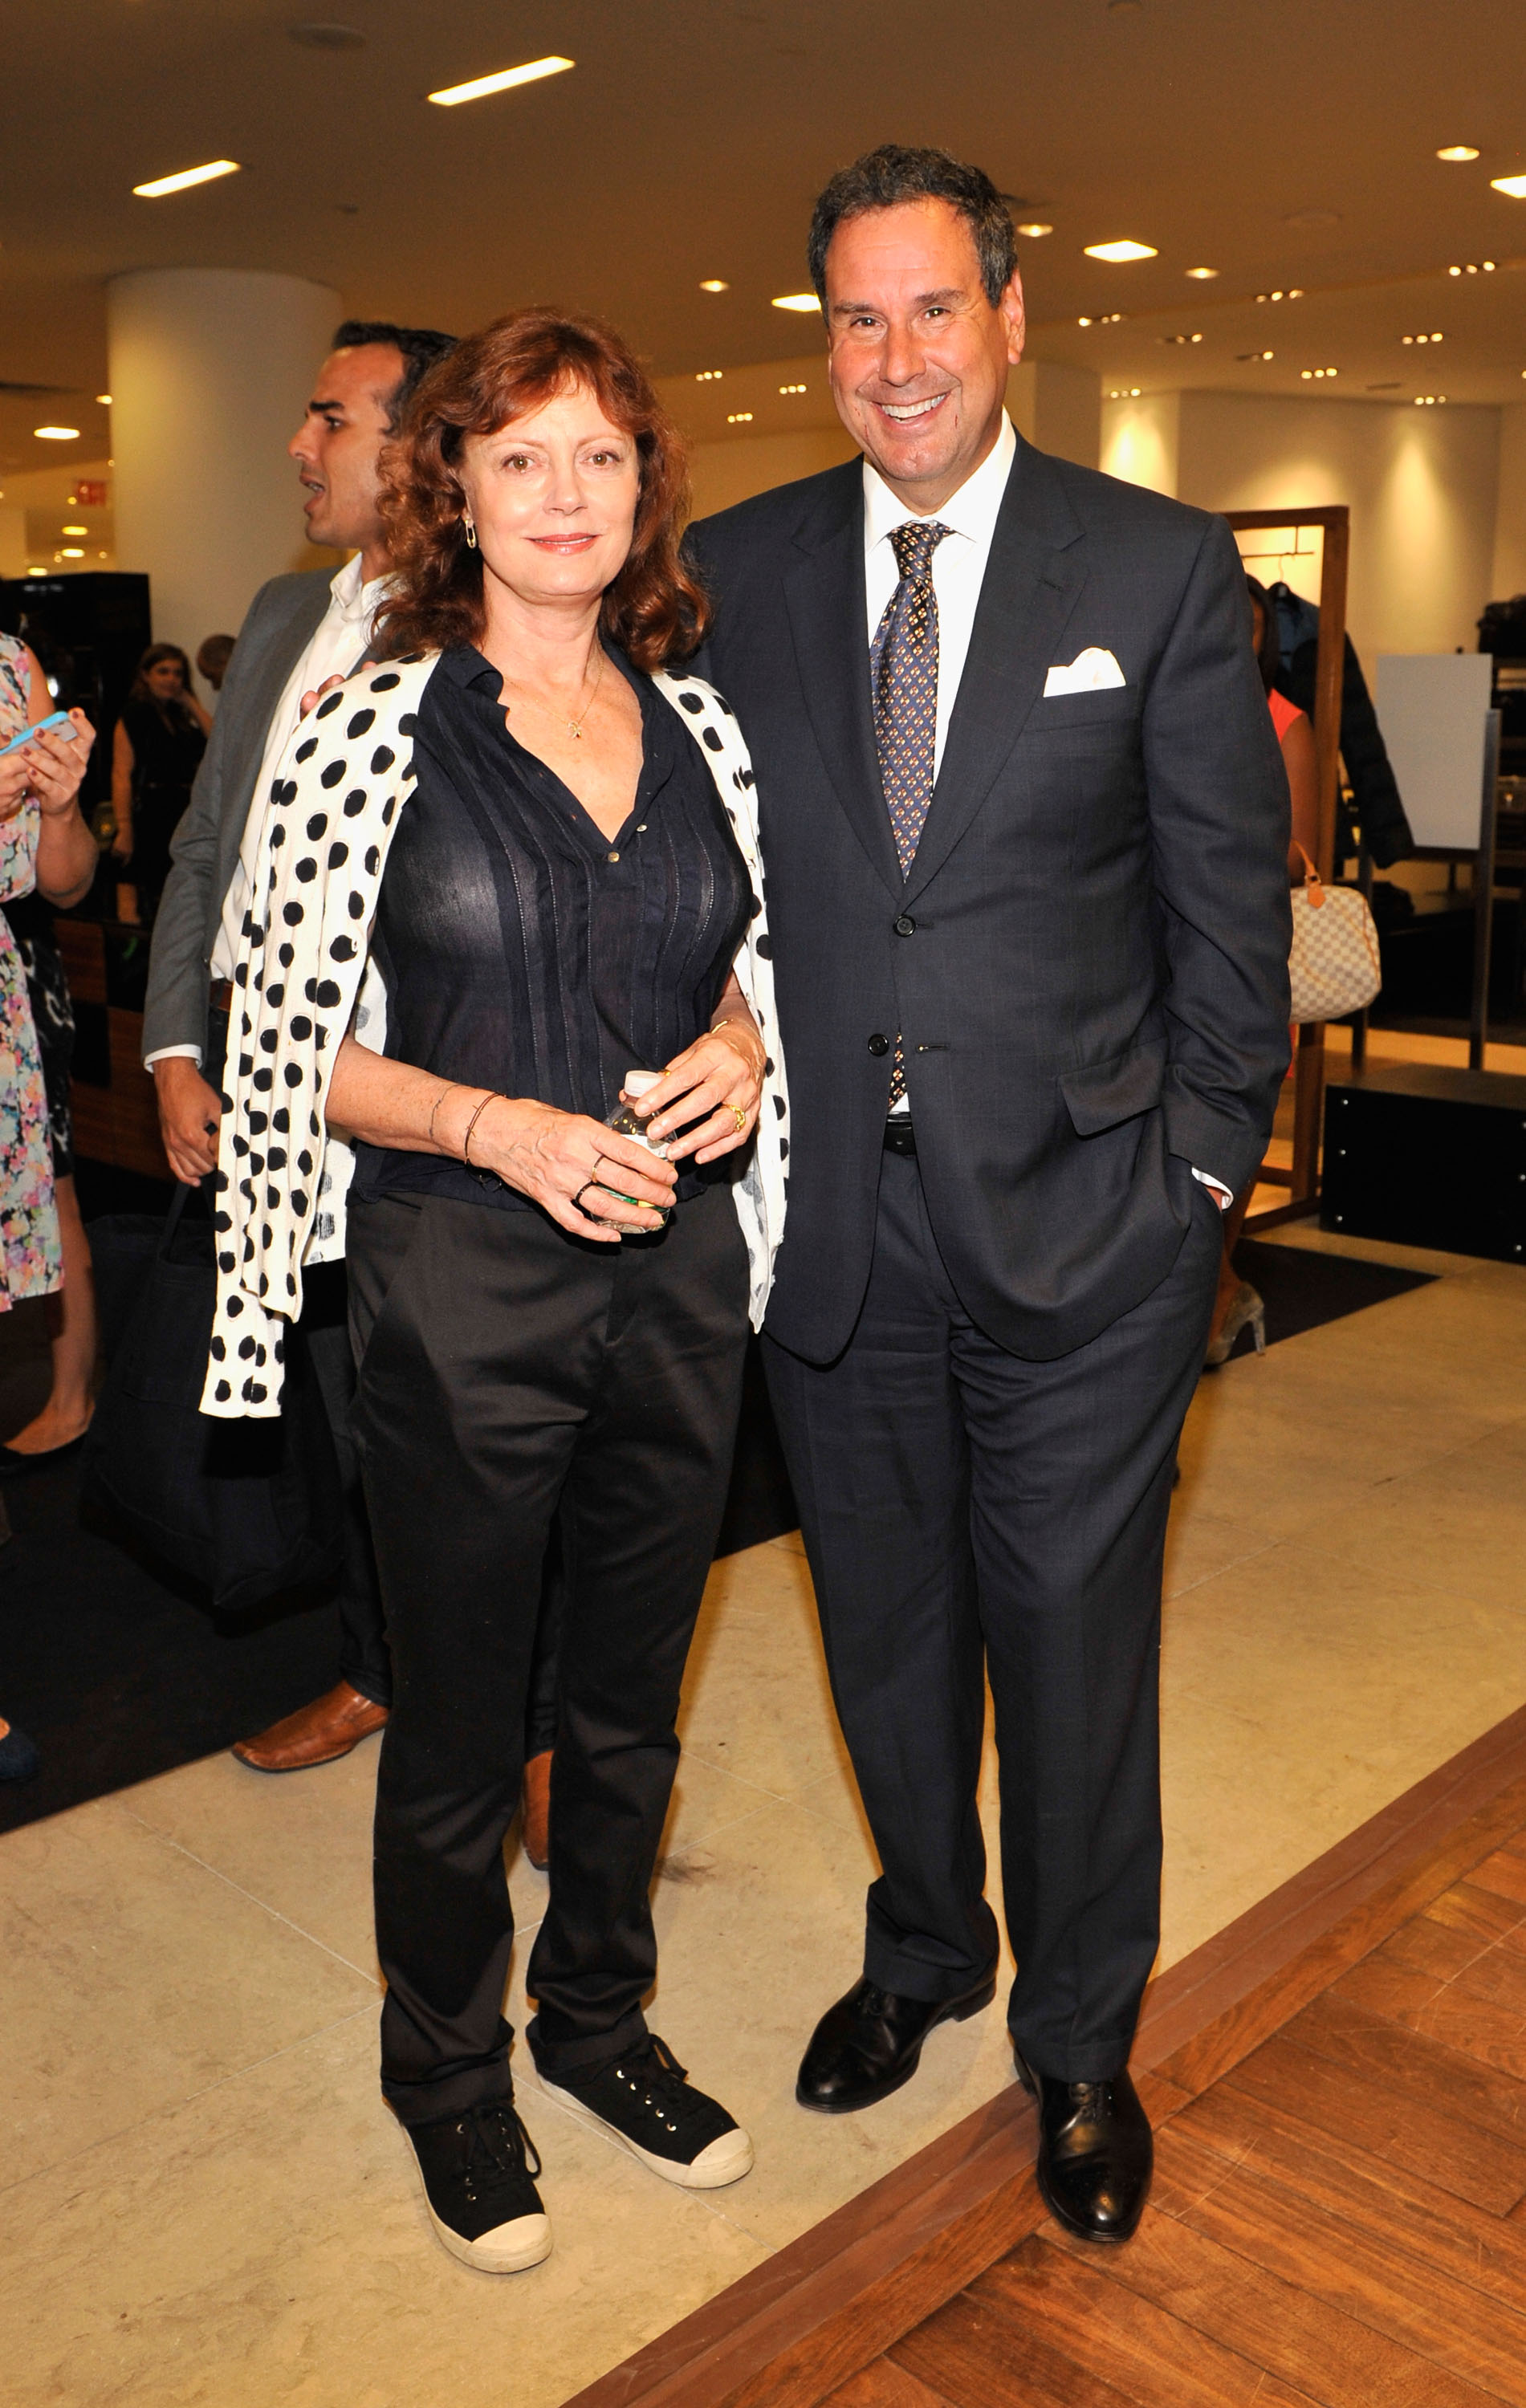 Susan Sarandon, and Steve Sadove the Chairman and CEO of Saks 5th Avenue attends Fashion's Night Out at Saks Fifth Avenue on September 6, 2012 in New York City.  (Photo by Michael N. Todaro/Getty Images for Saks Fifth Avenue)